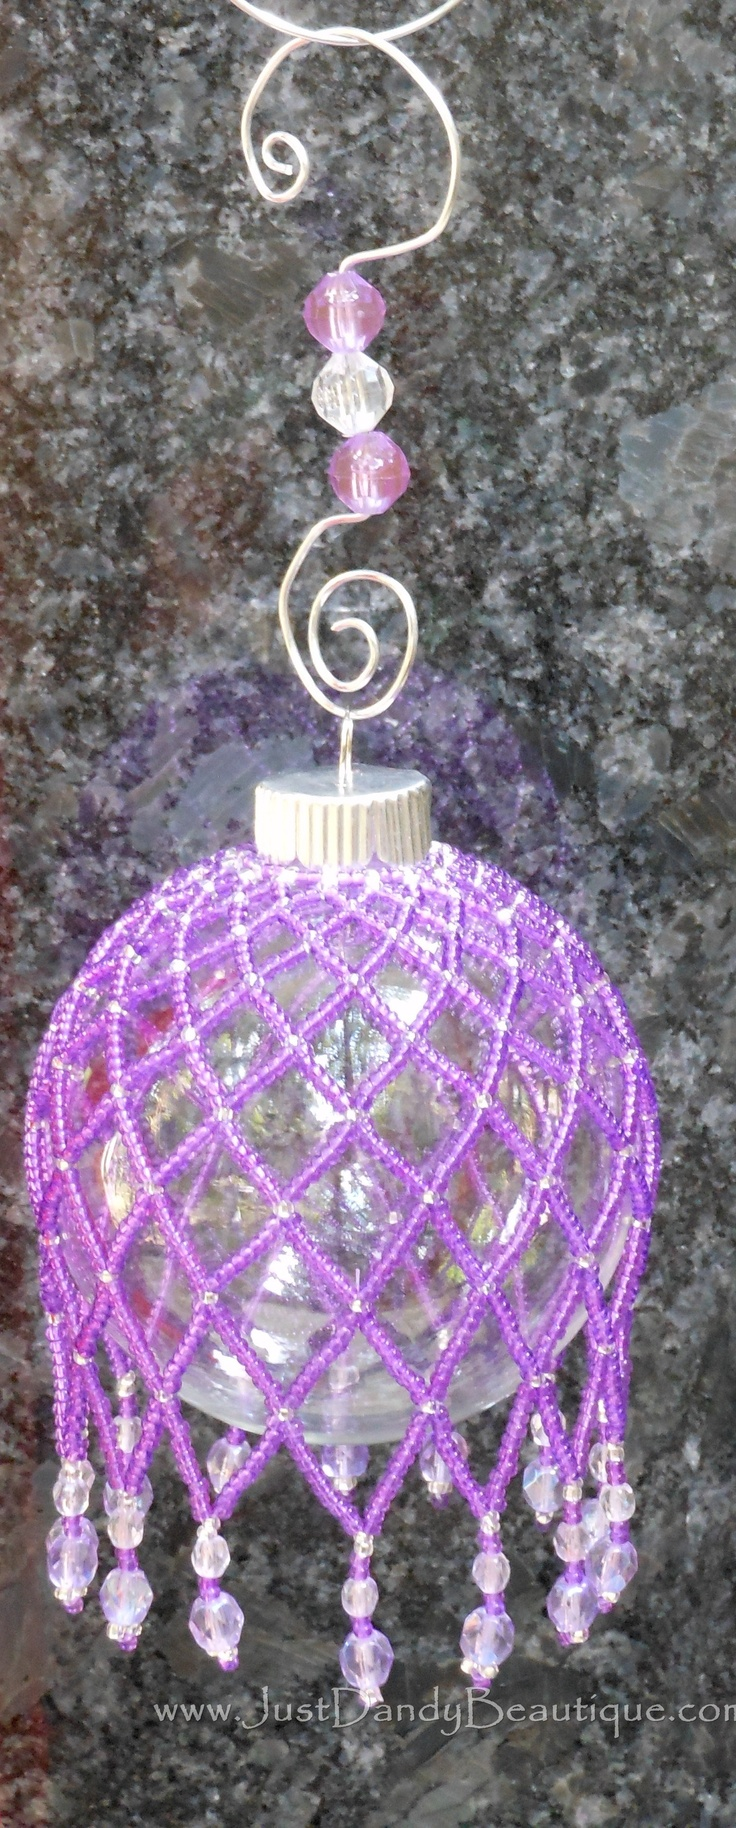 Beaded Zig-Zag Ornament Cover – Purple (Onrament and beaded hanger included)!  Buy online at www.justdandybeautique.com!